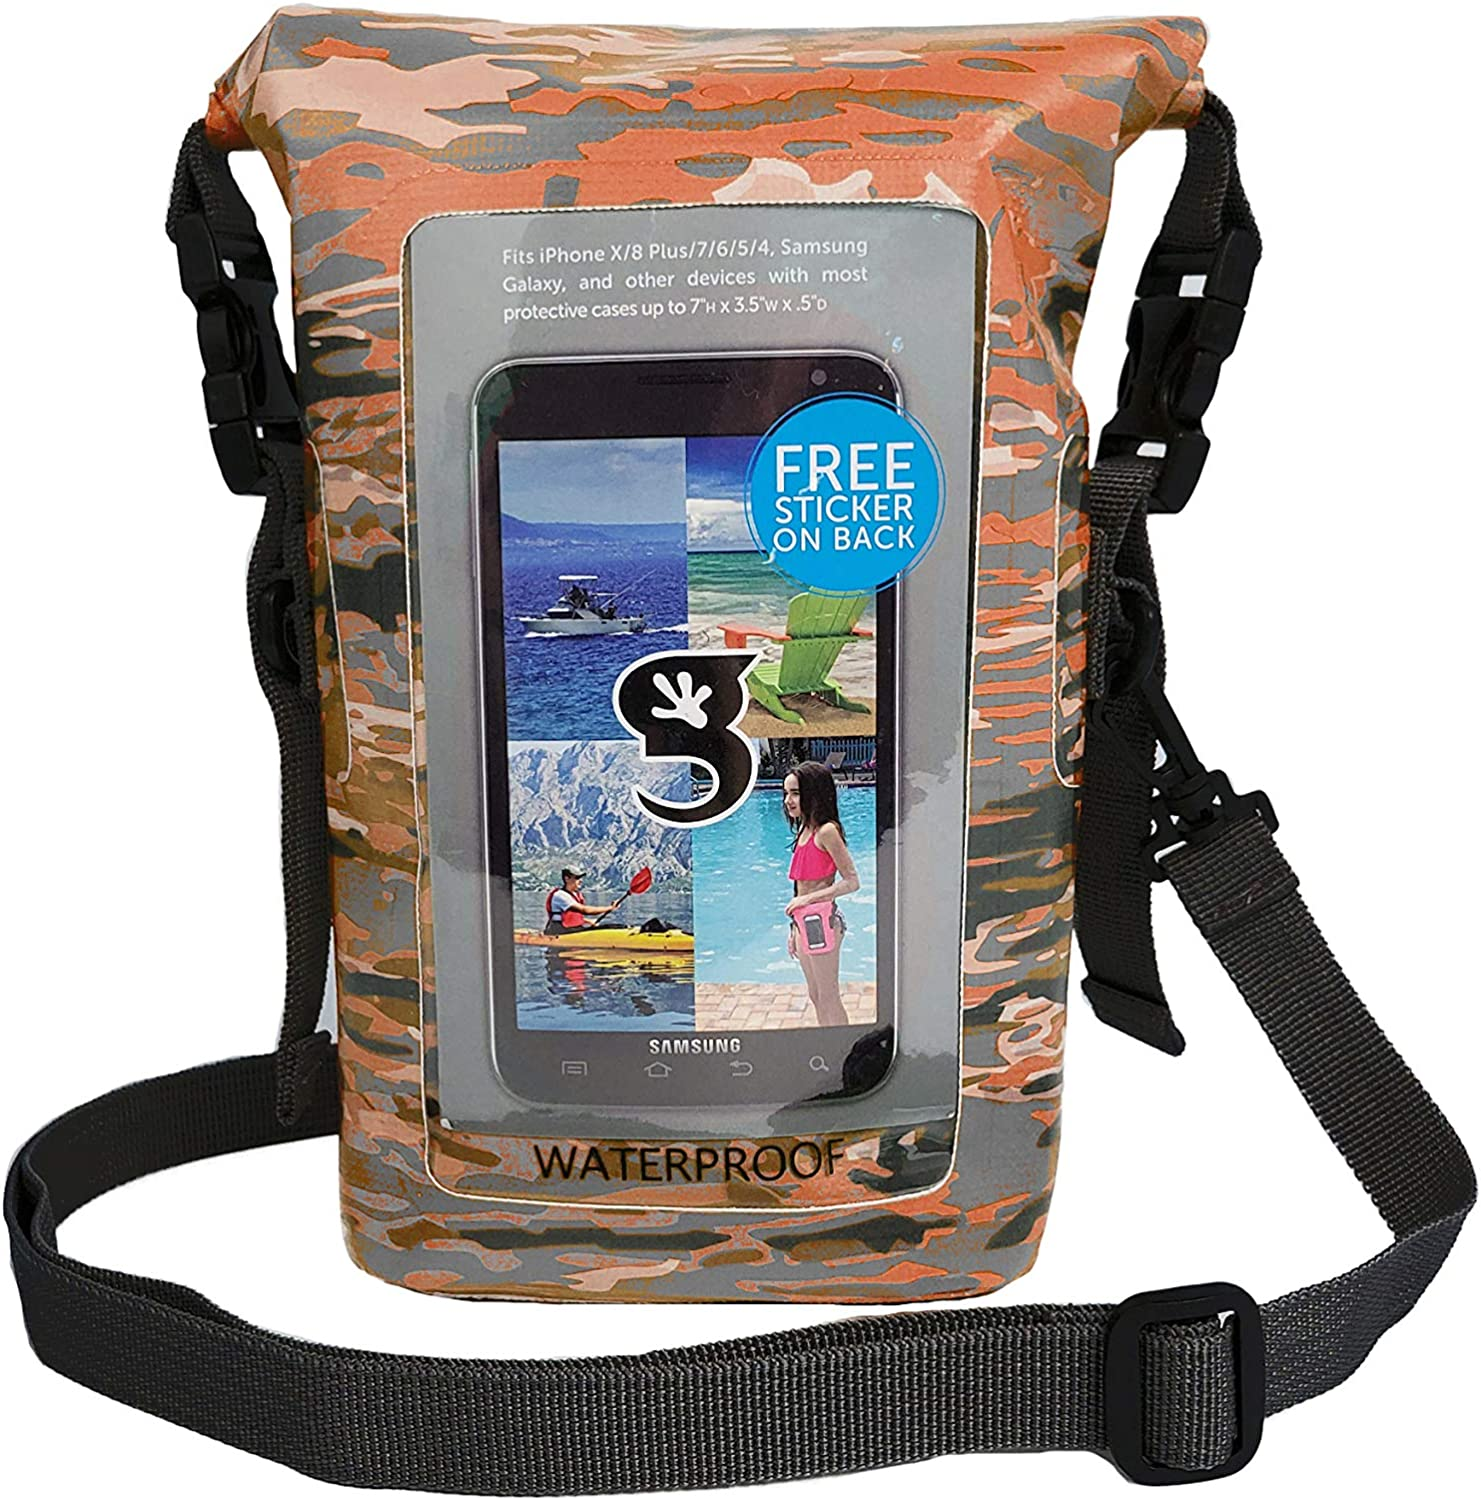 geckobrands Waterproof Phone Tote - Outdoor Phone Pouch & Dry Bag – Fits Most iPhone and Samsung Galaxy Models, Available in 10 Colors (Ember geckoflage)